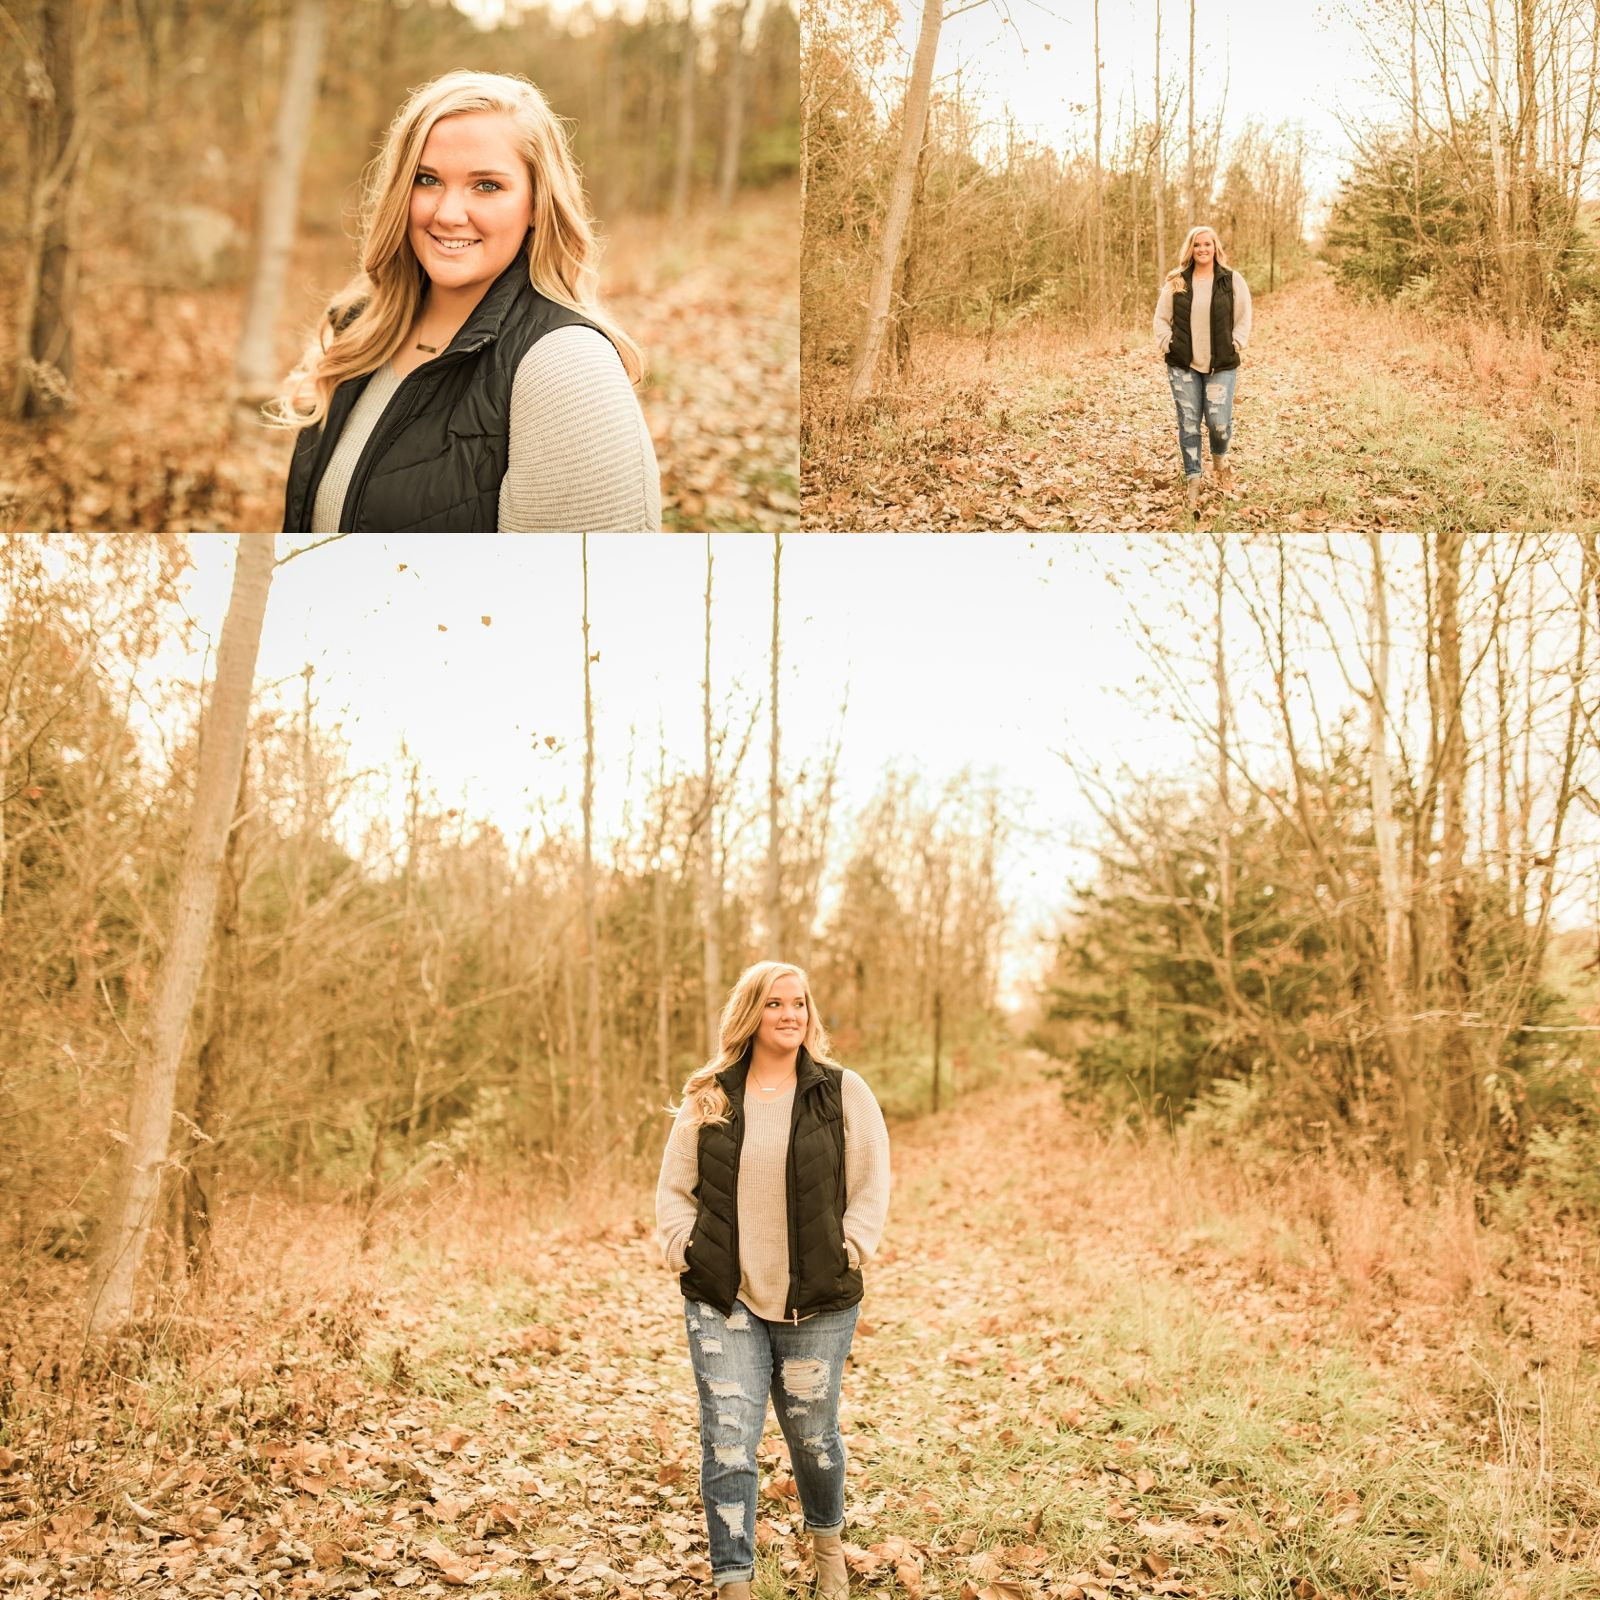 Fall Senior Session | family photo ideas | Senior pictures